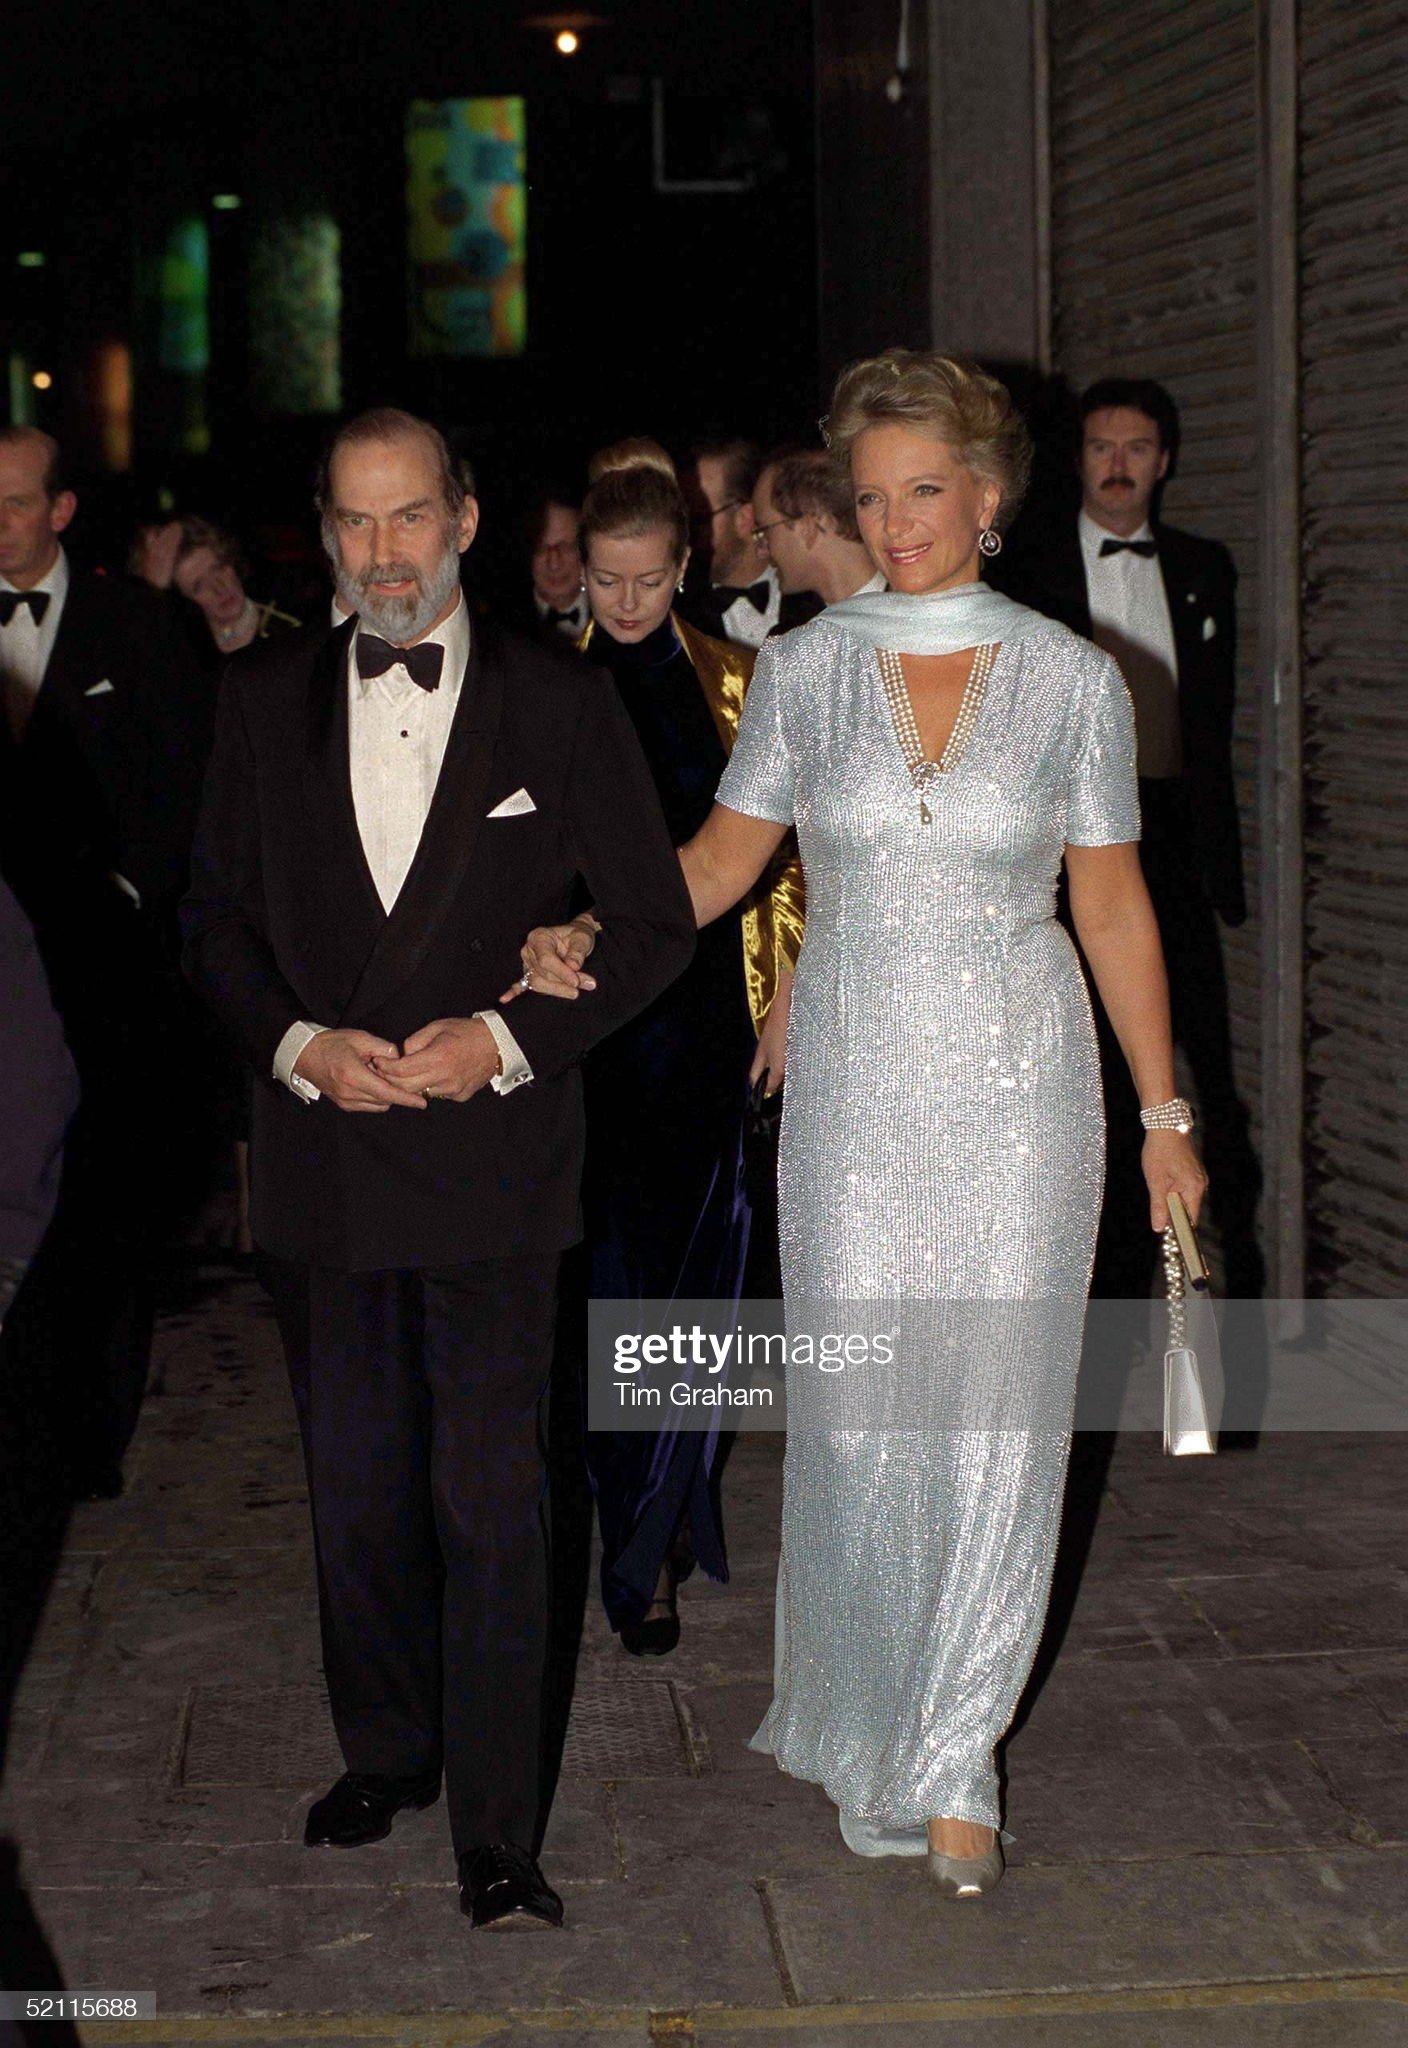 Prince And Princess Michael At Party : News Photo